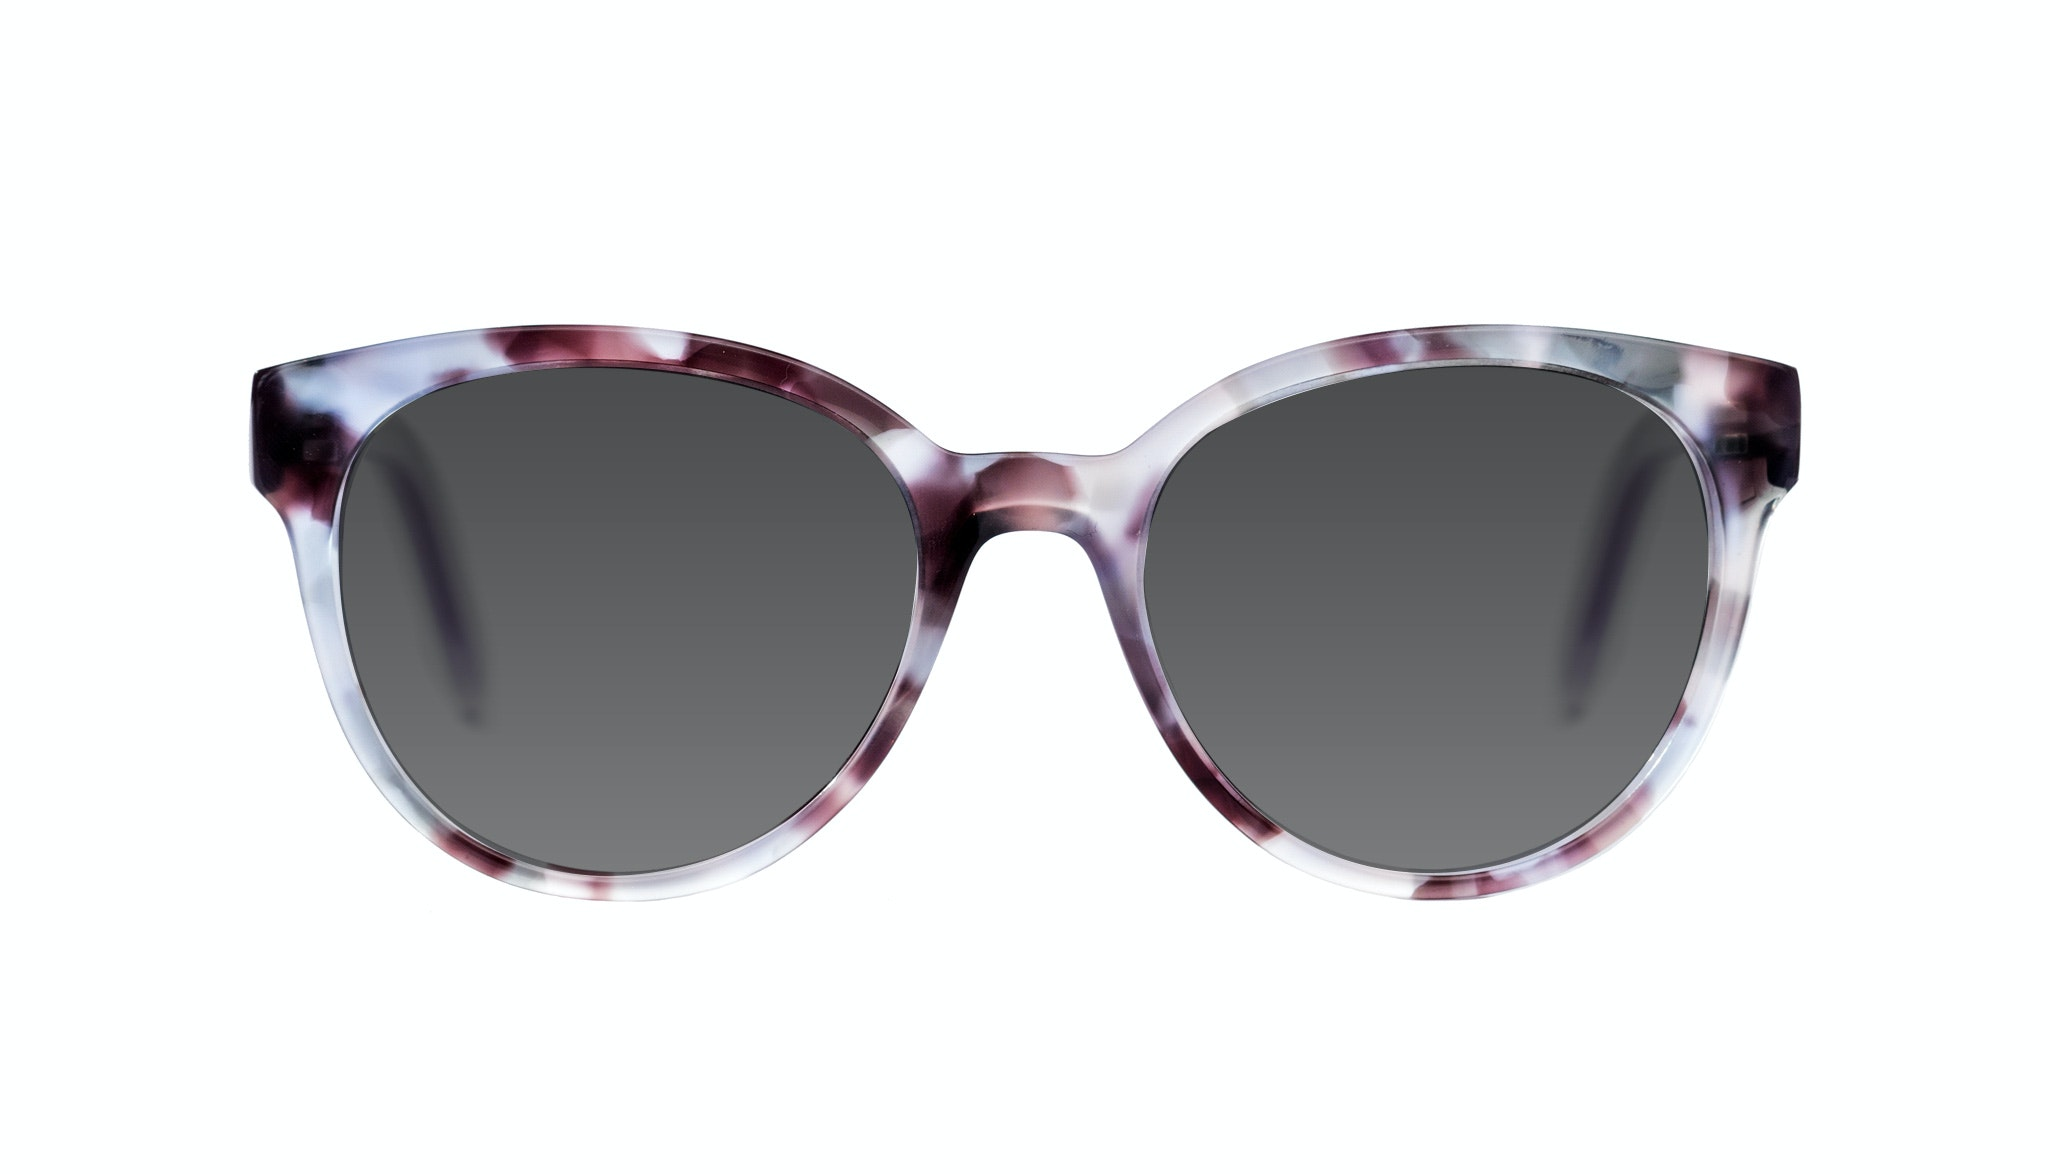 Affordable Fashion Glasses Cat Eye Round Sunglasses Women Eclipse Lilac Tort